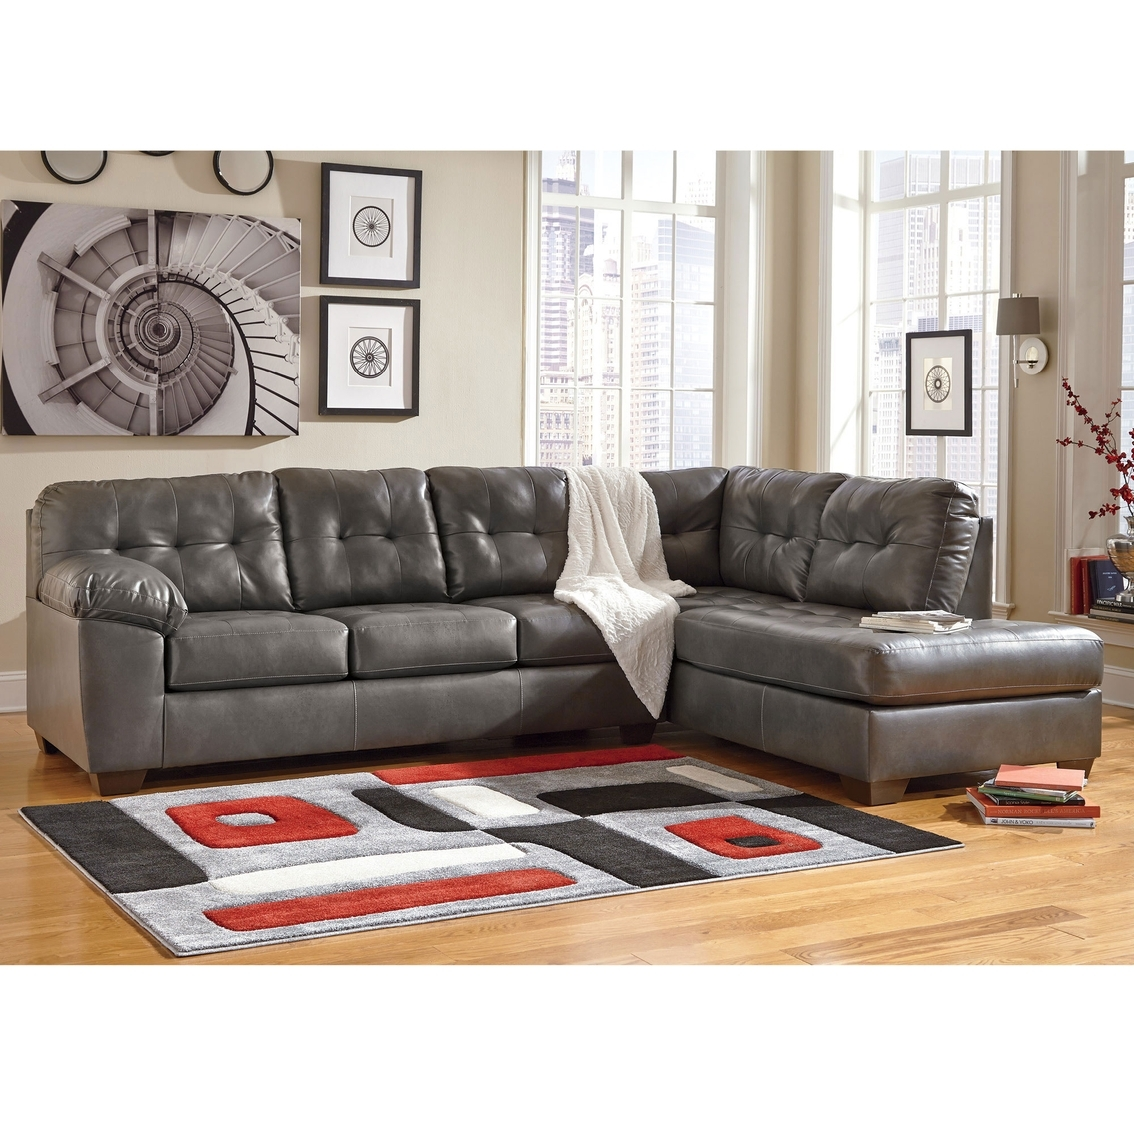 Signature Designashley Alliston Durablend 2 Pc. Sectional Raf in Cosmos Grey 2 Piece Sectionals With Laf Chaise (Image 21 of 30)